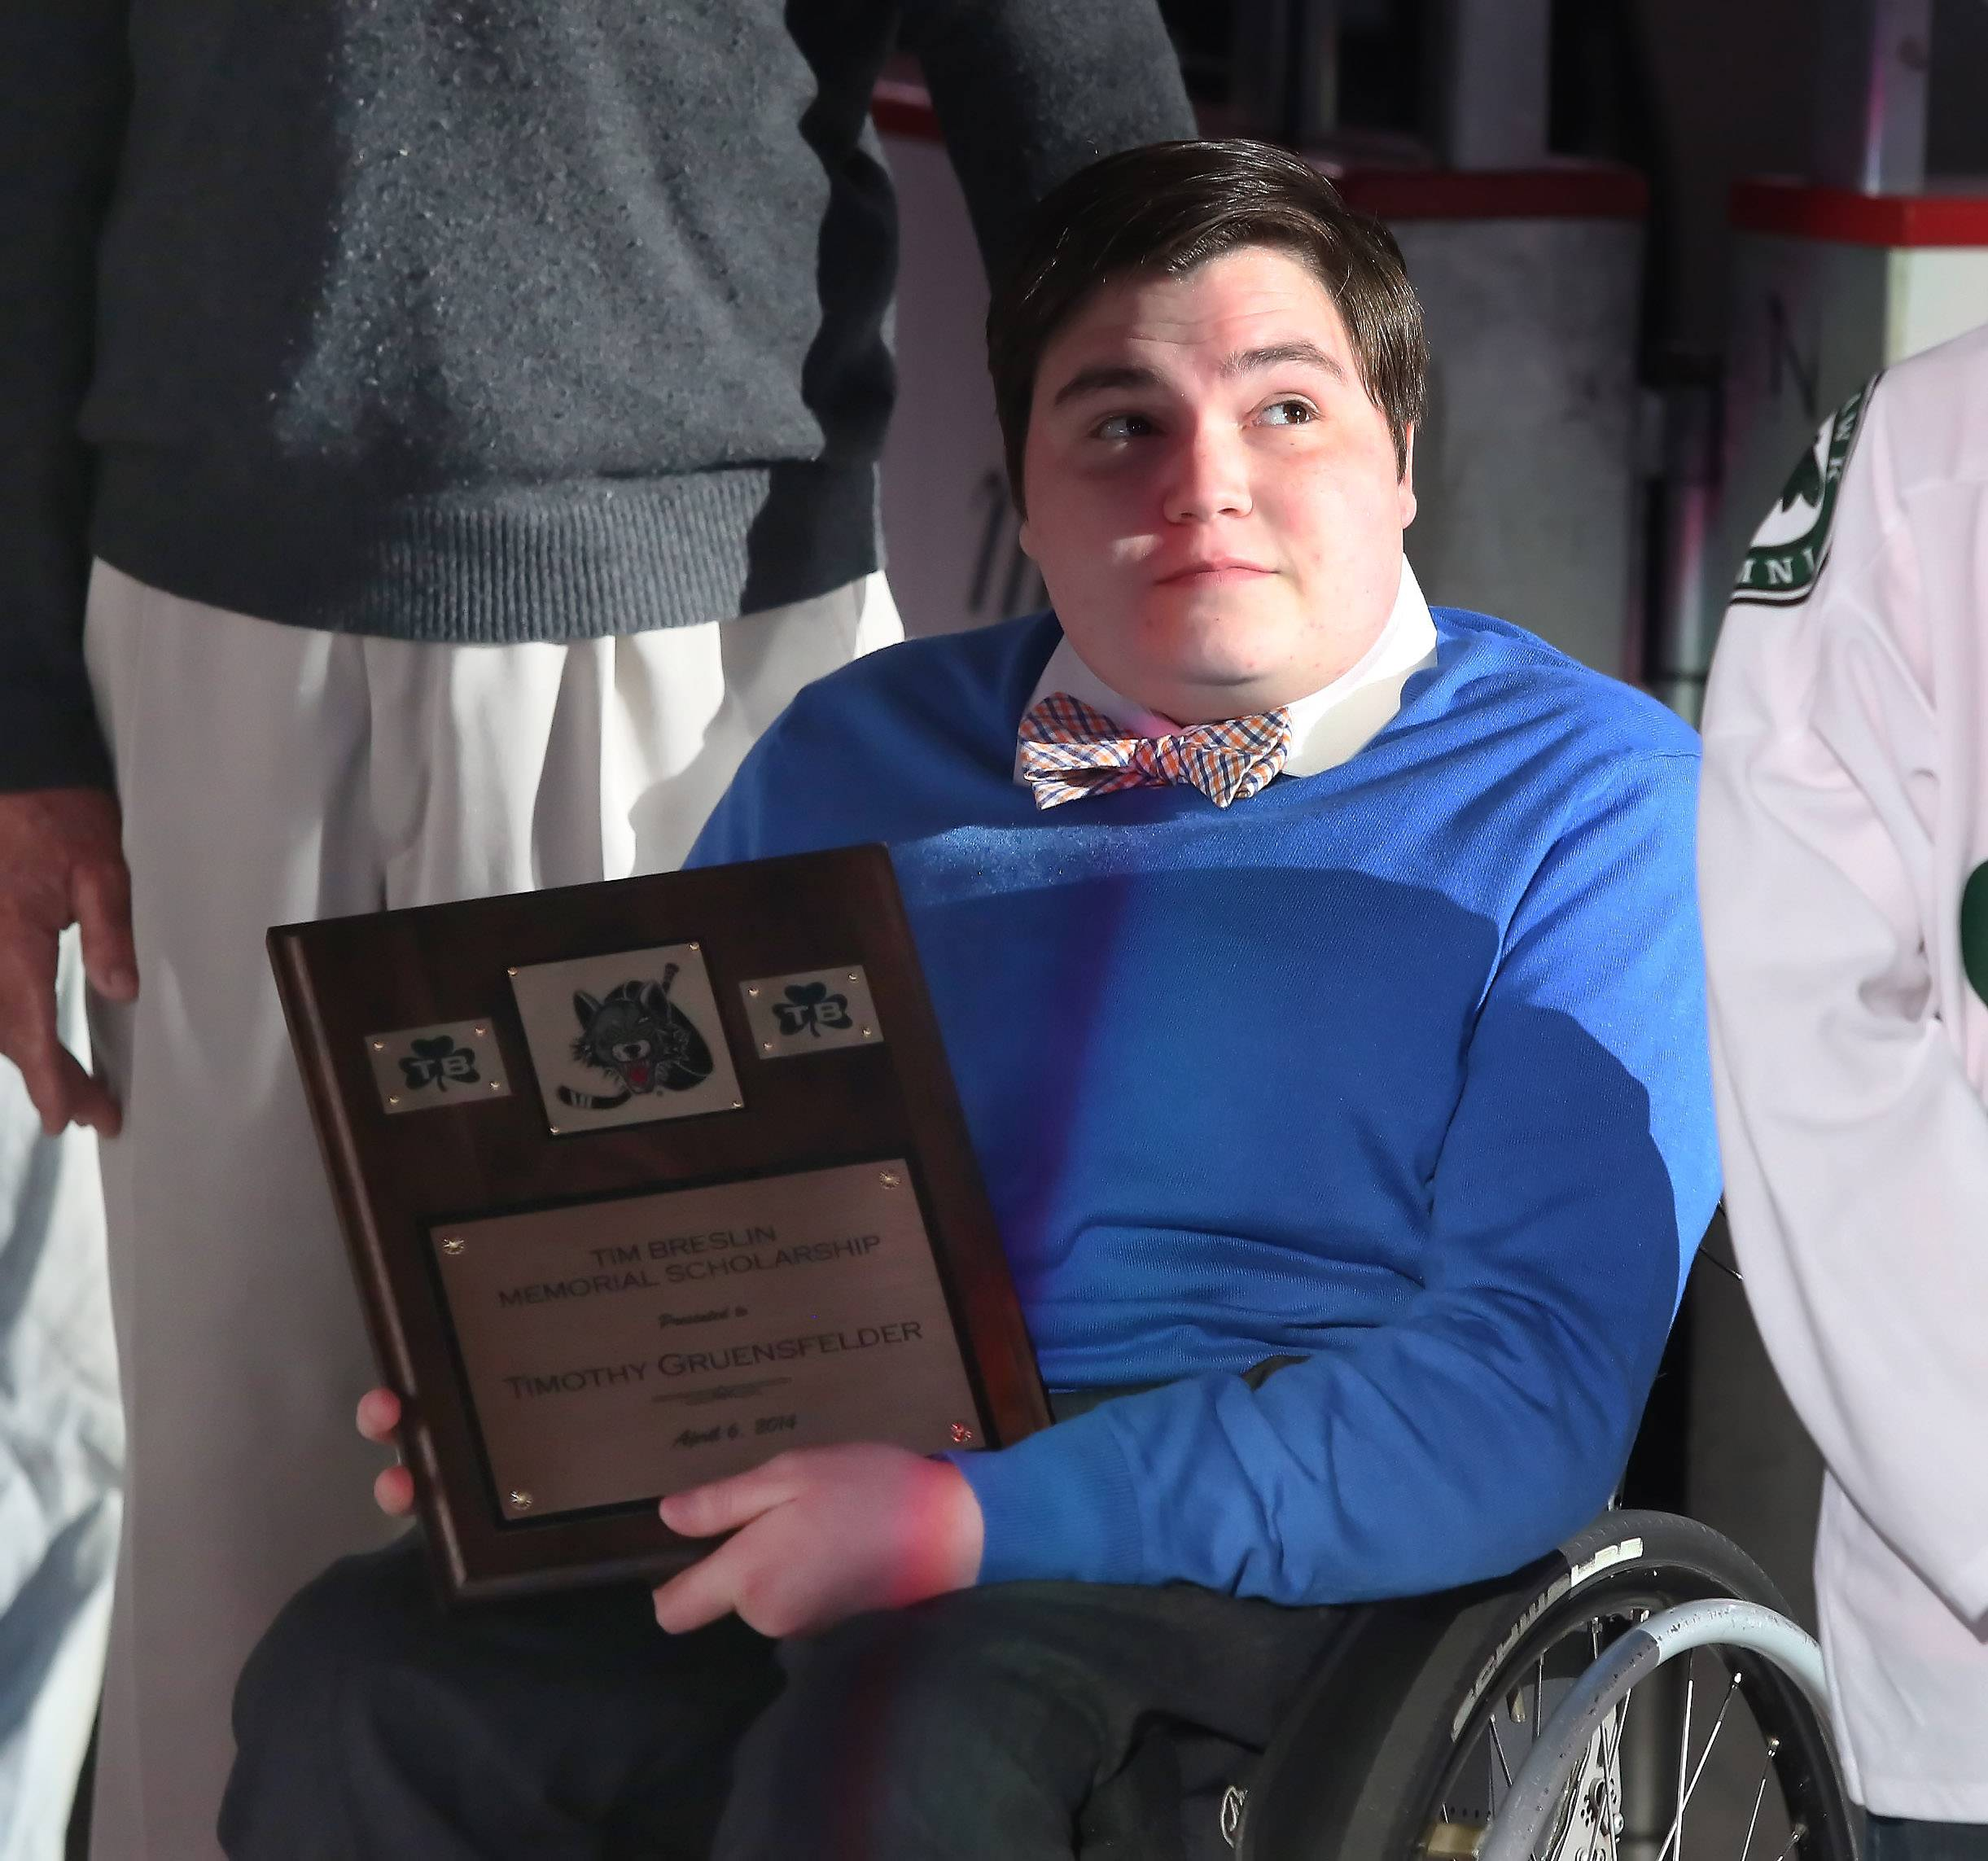 St. Viator student Tim Gruensfelder received the Tim Breslin Memorial Scholarship from the Chicago Wolves on April 6 at Allstate Arena in Rosemont. Tim was diagnosed with a rare brain tumor when he was 4, but has never let that stop him from accomplishing his goals.